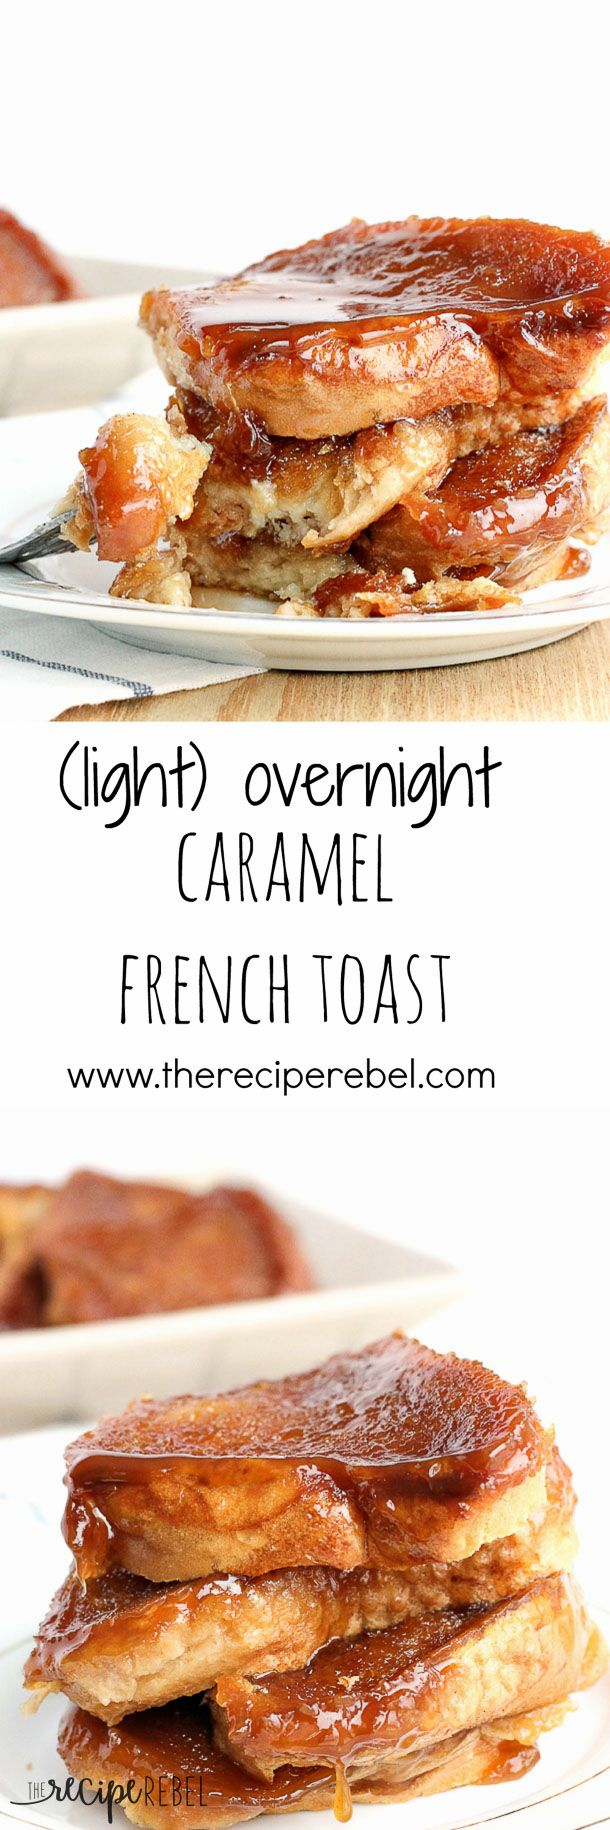 Light Overnight Caramel French Toast: Overnight french toast baked on a sweet, sticky caramel that you don't have to feel guilty about! The perfect breakfast or brunch for Christmas, Easter, birthdays, or just any weekend! www.thereciperebel.com